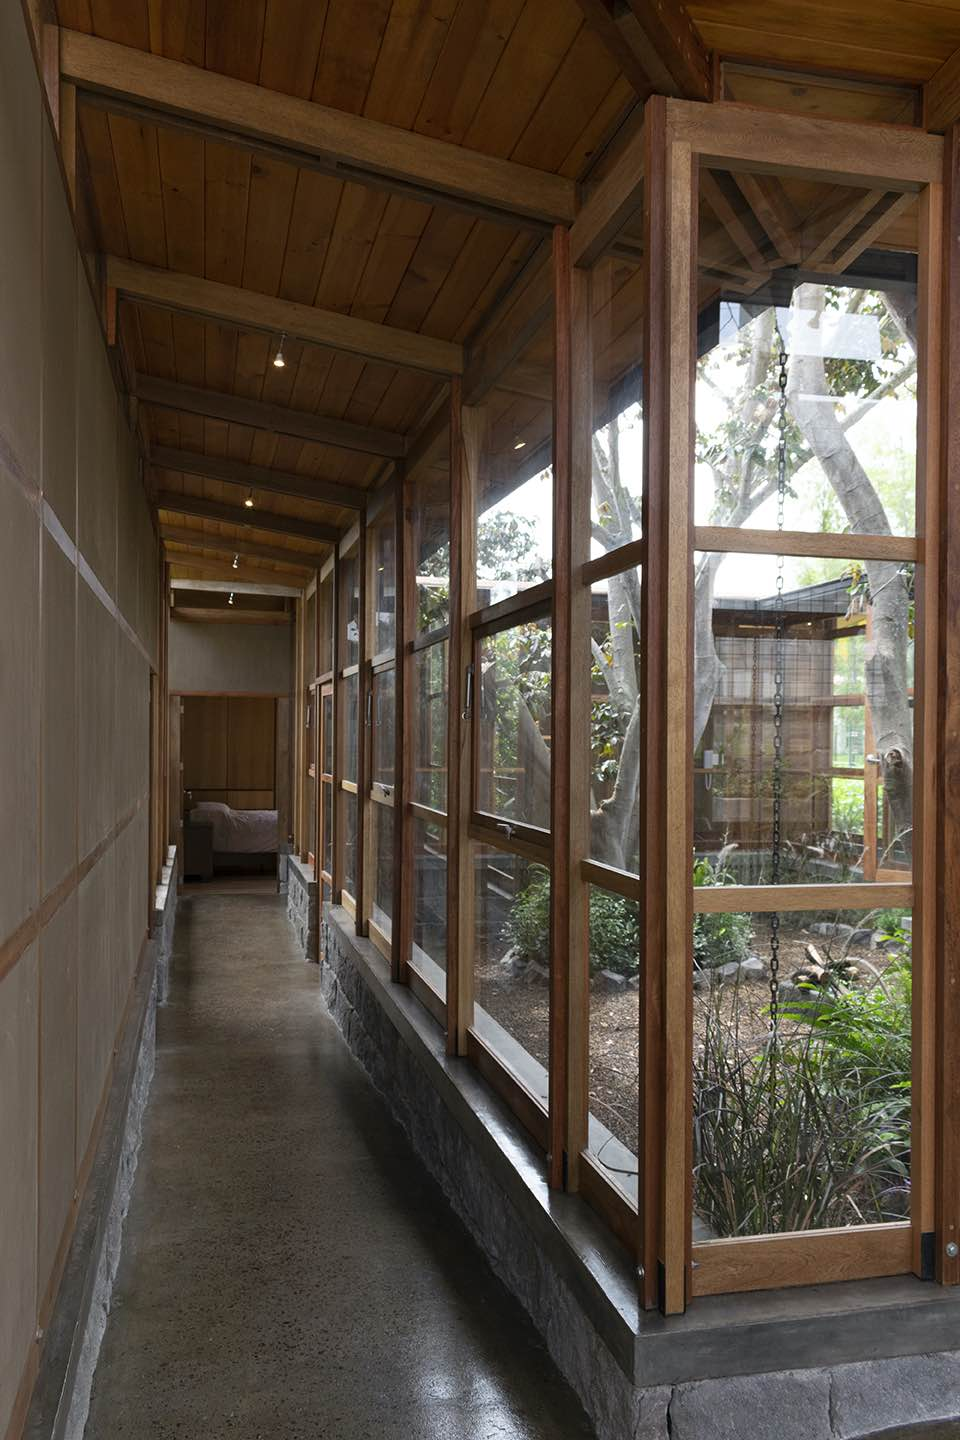 a corridor connecting living area to bedroom with large windows